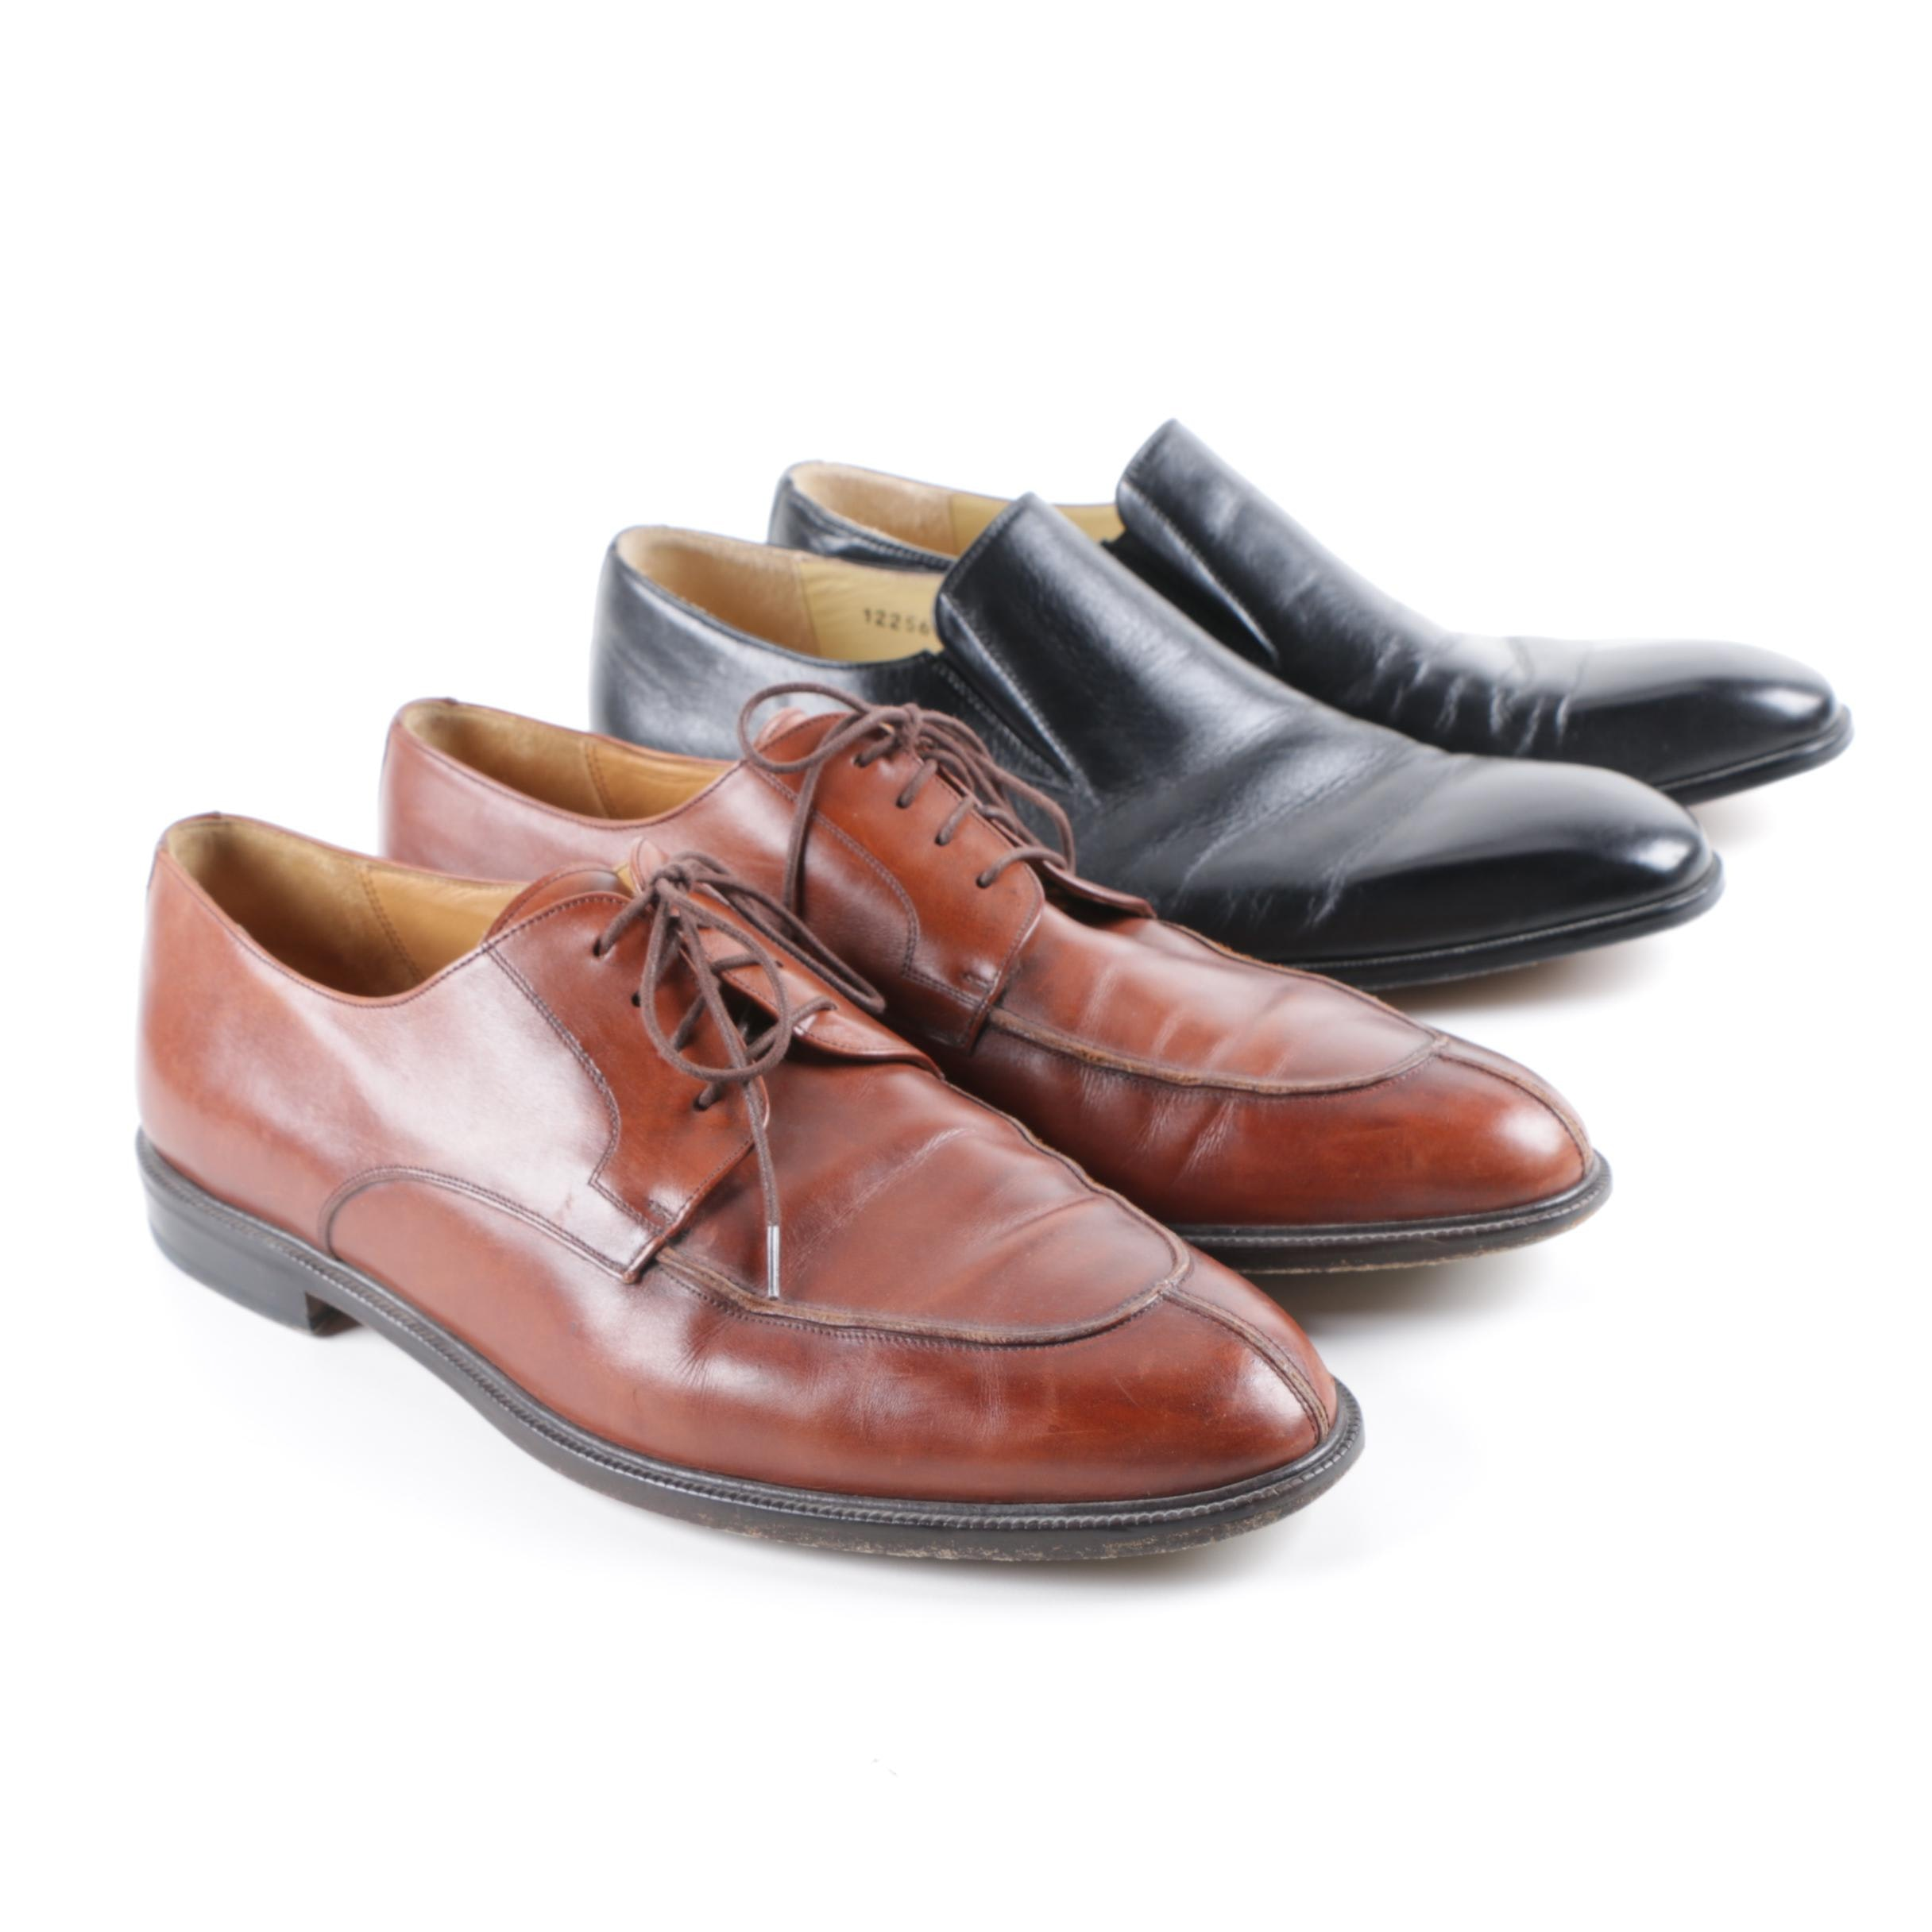 Men's Mezlan and Massimo Emporio Leather Dress Shoes